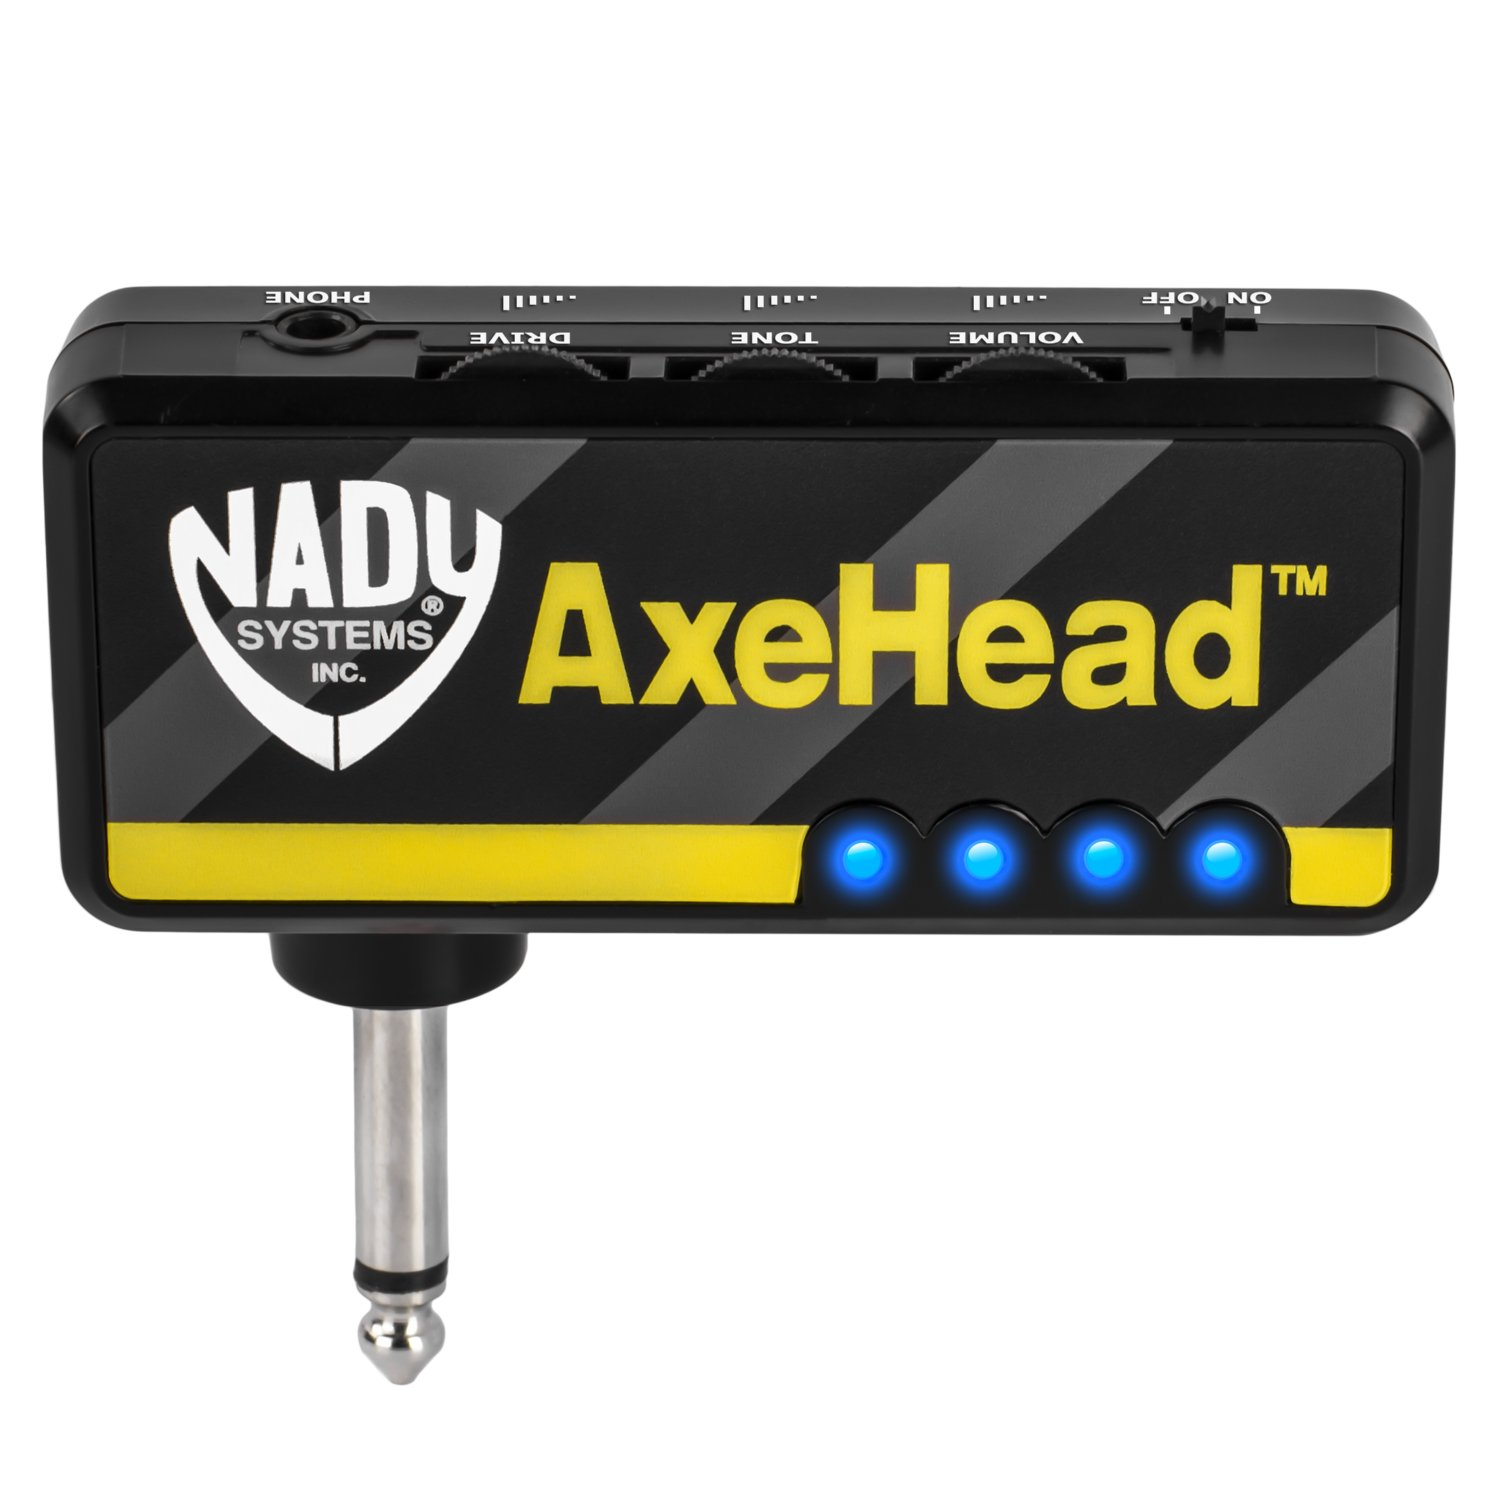 Image result for Nady Axehead Headphone Guitar Amplifier